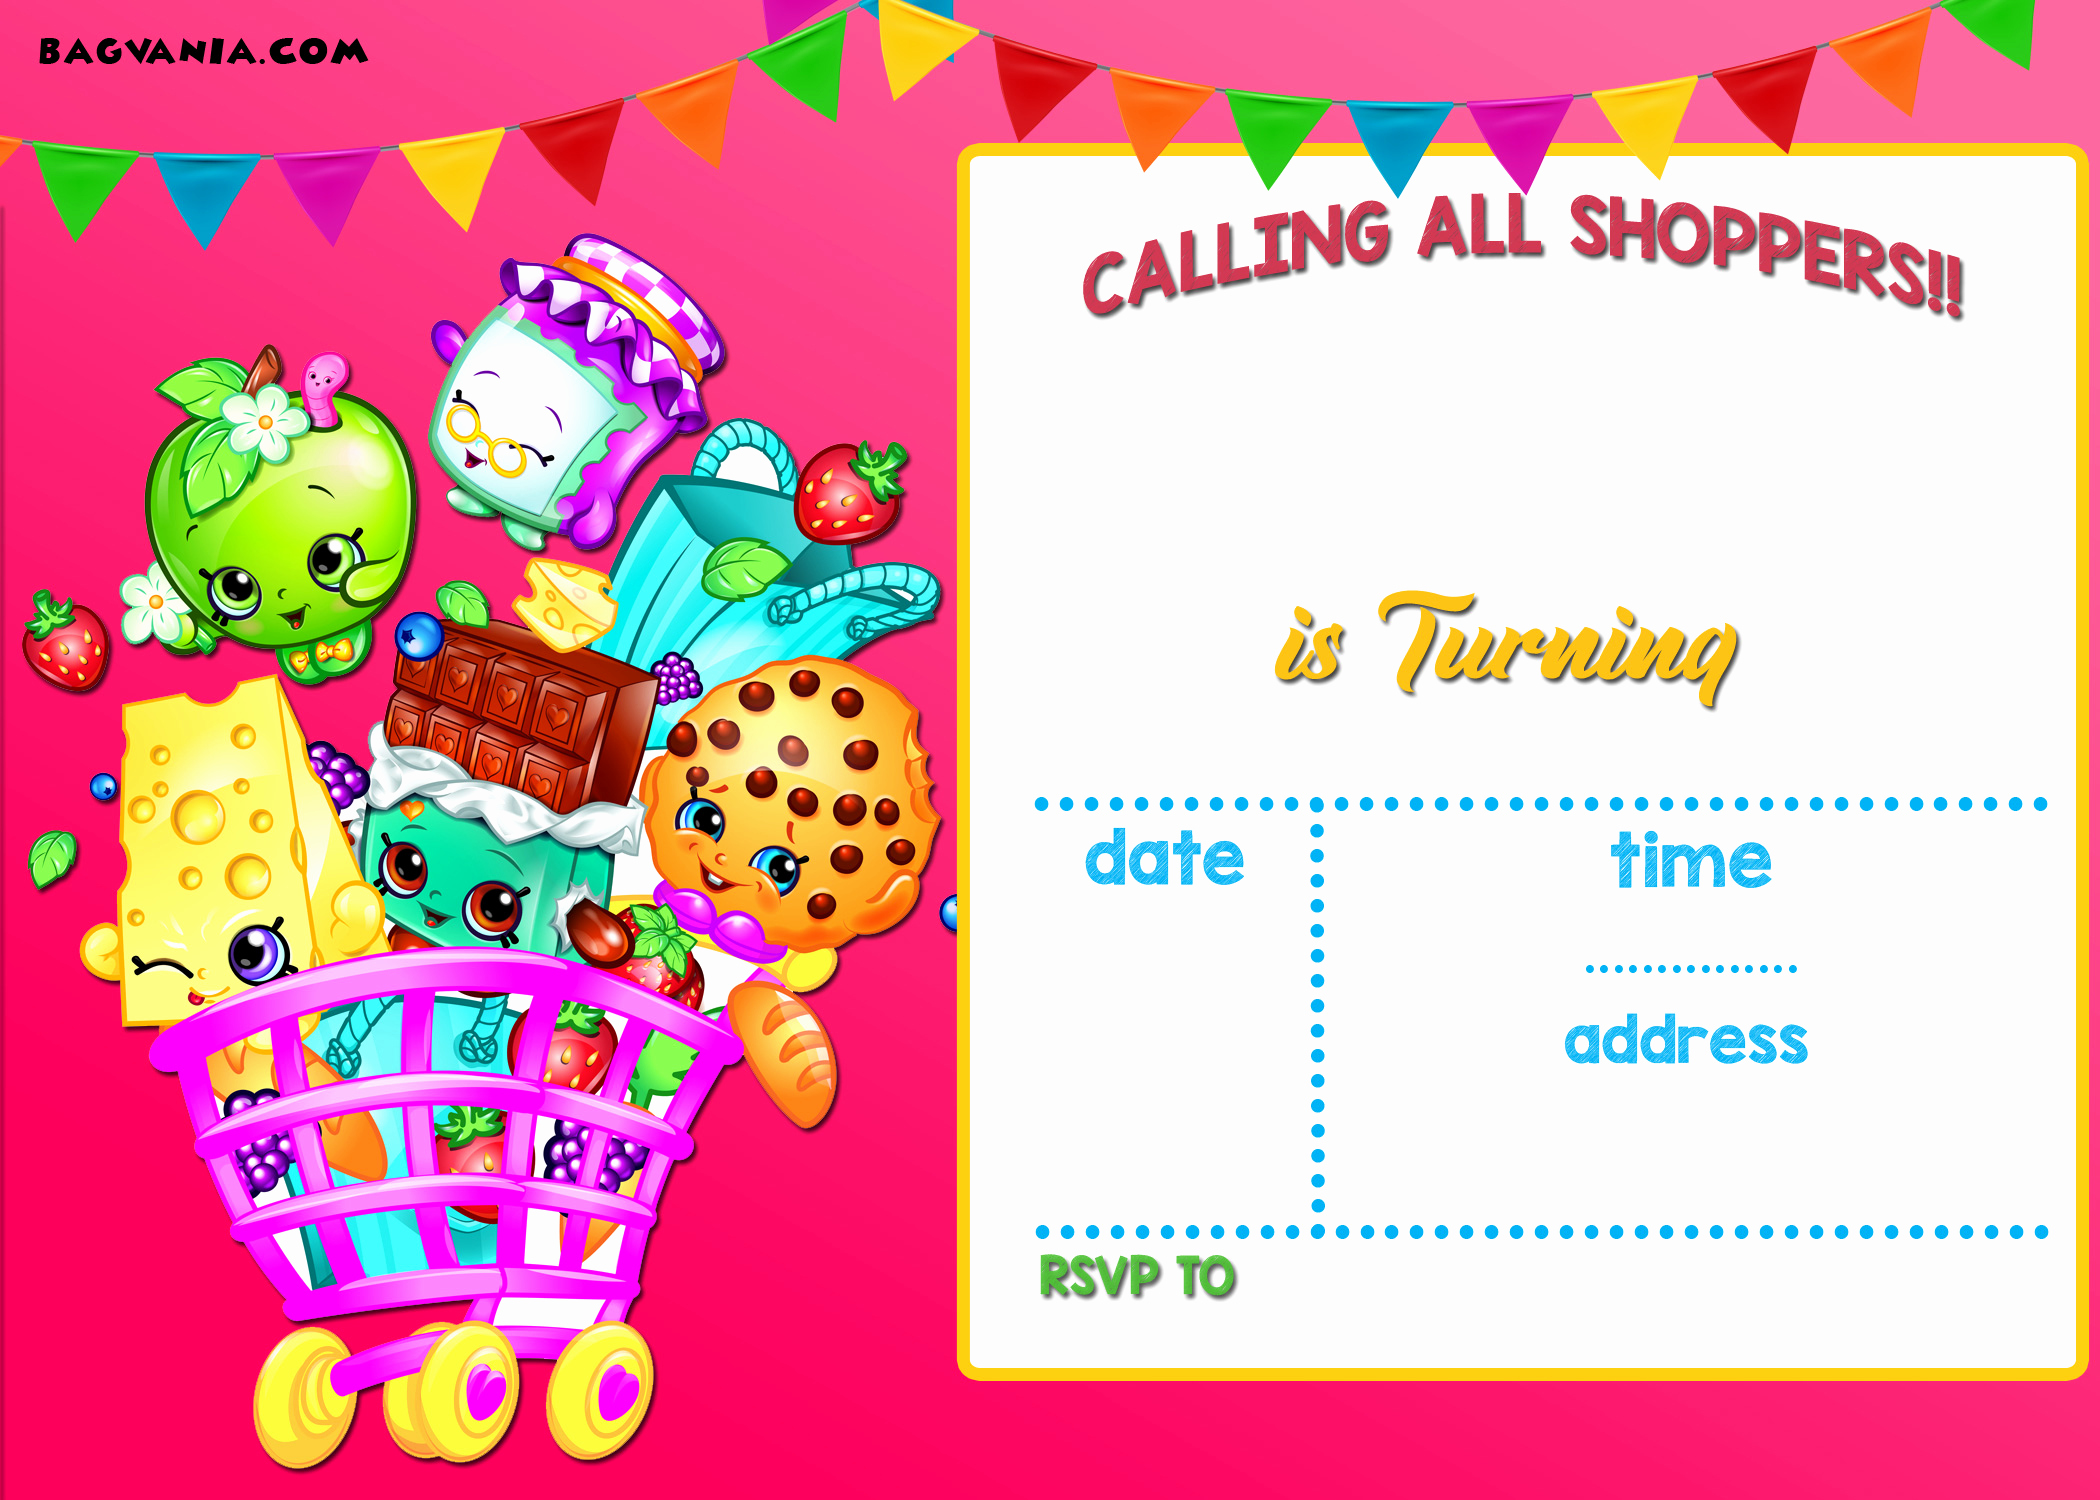 Free Shopkins Invitation Template Inspirational Calling All Shoppers Here are Free Blank Shopkins